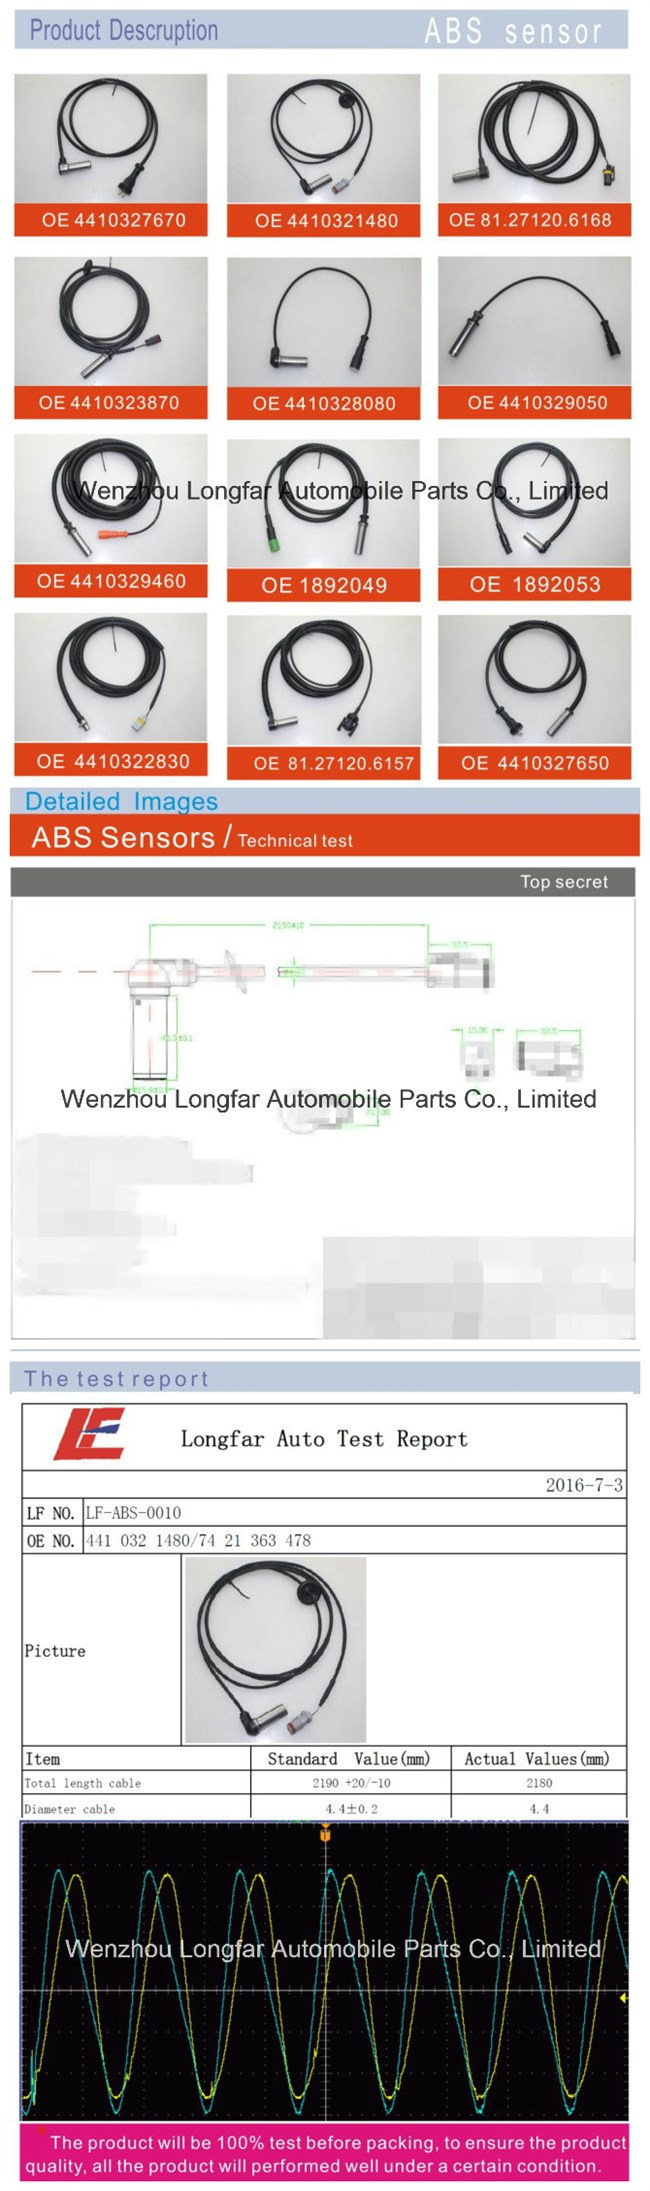 ABS Sensor Anti-Lock Braking System Transducer Indicator Sensor 4410323500, 7420916173, 21363495, 4410329930, 7420916173, 6.61912, 20732822 for Renault Truck